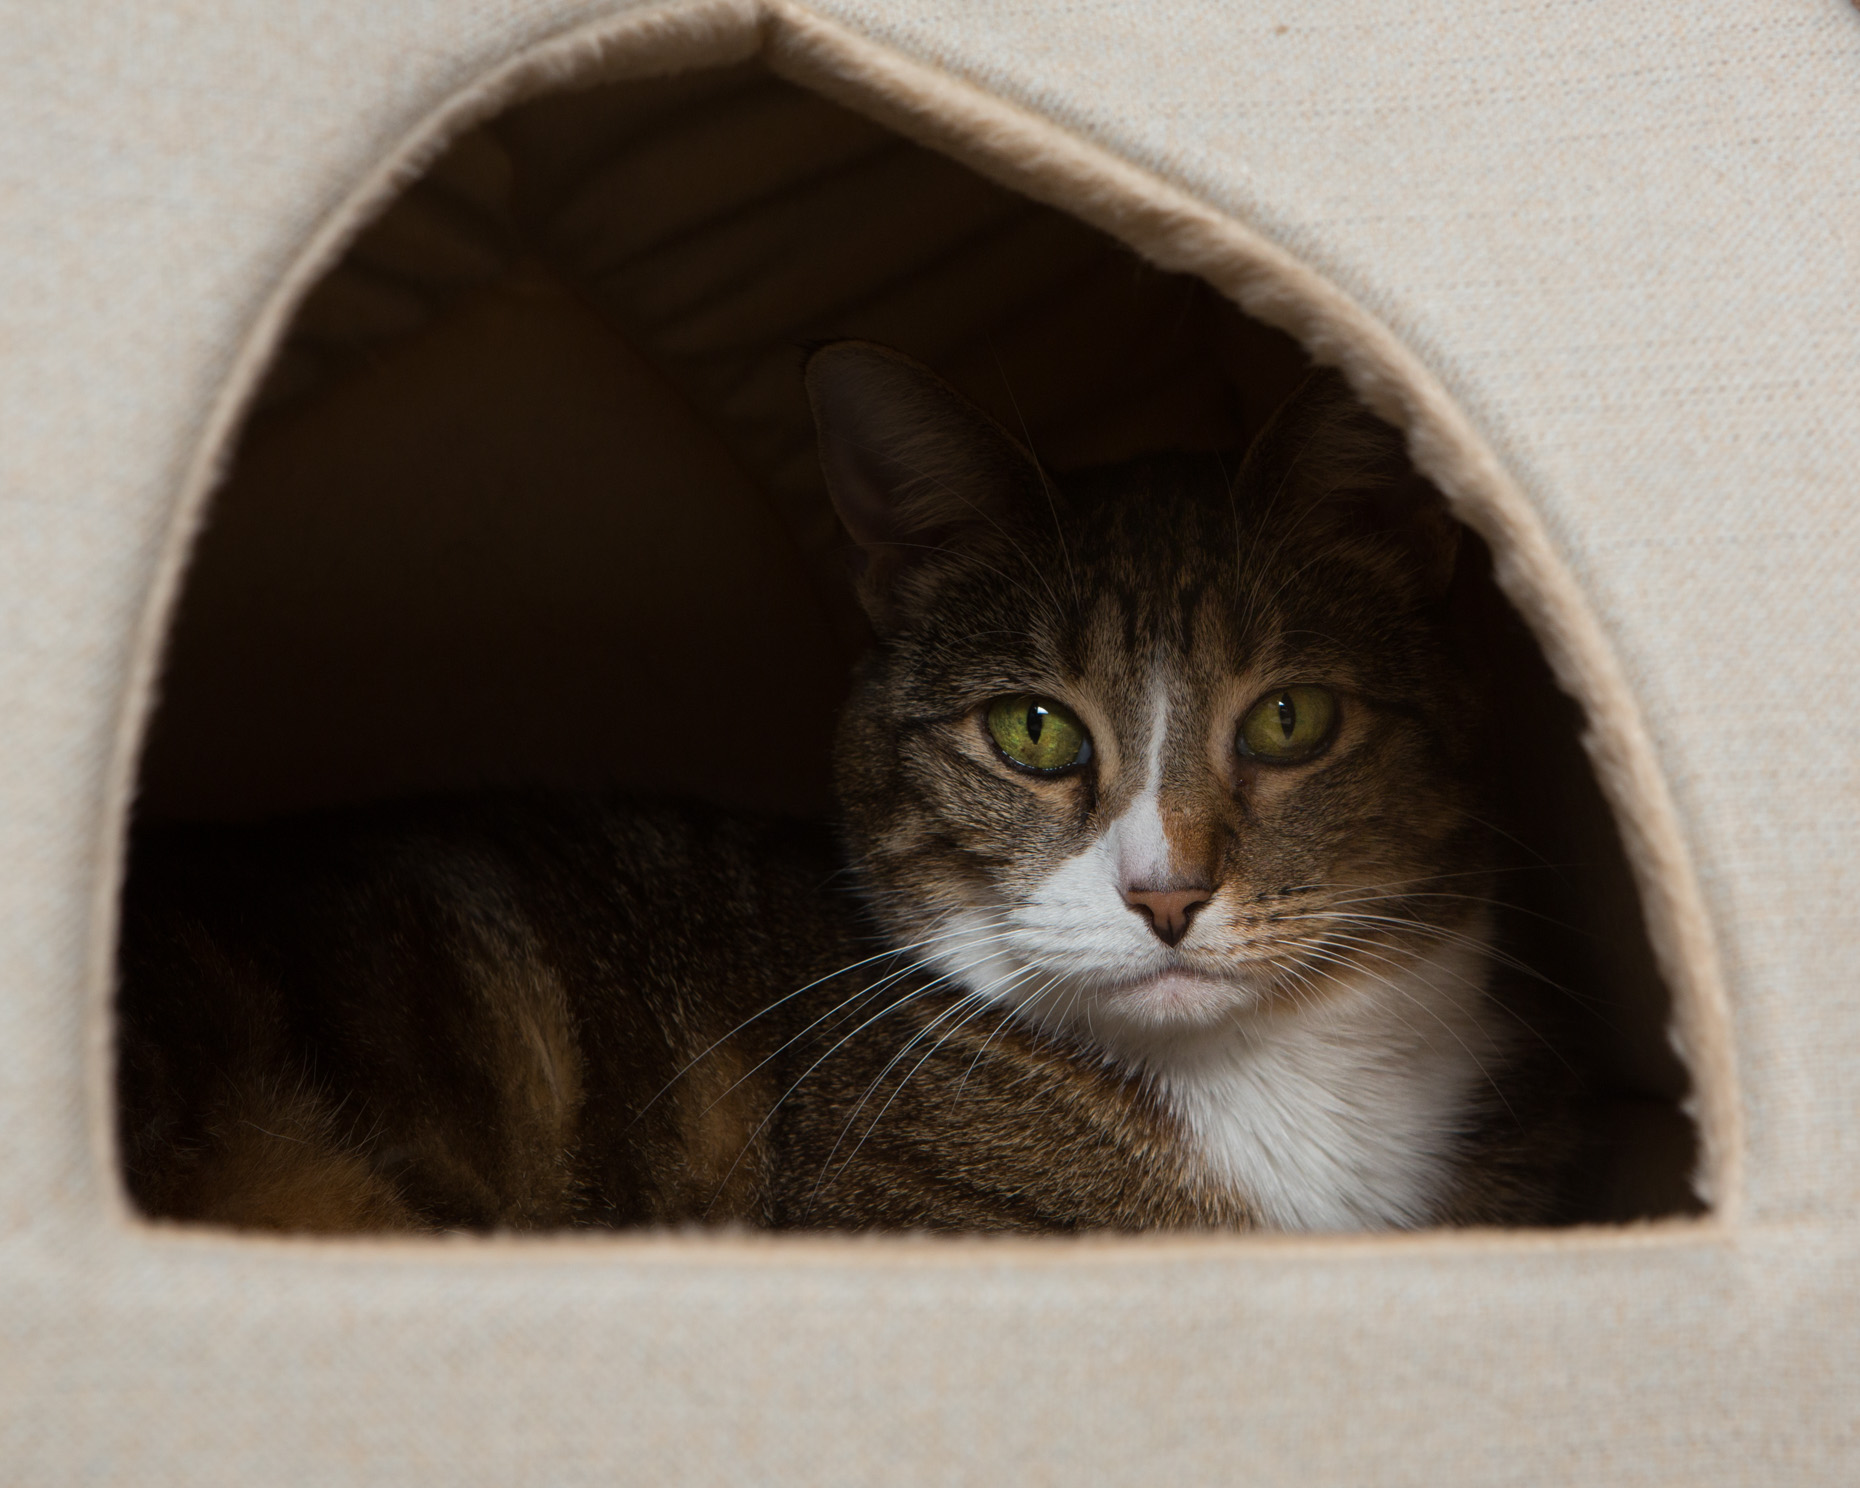 Pet Lifestyle Photography | Cat in Habitat by Mark Rogers